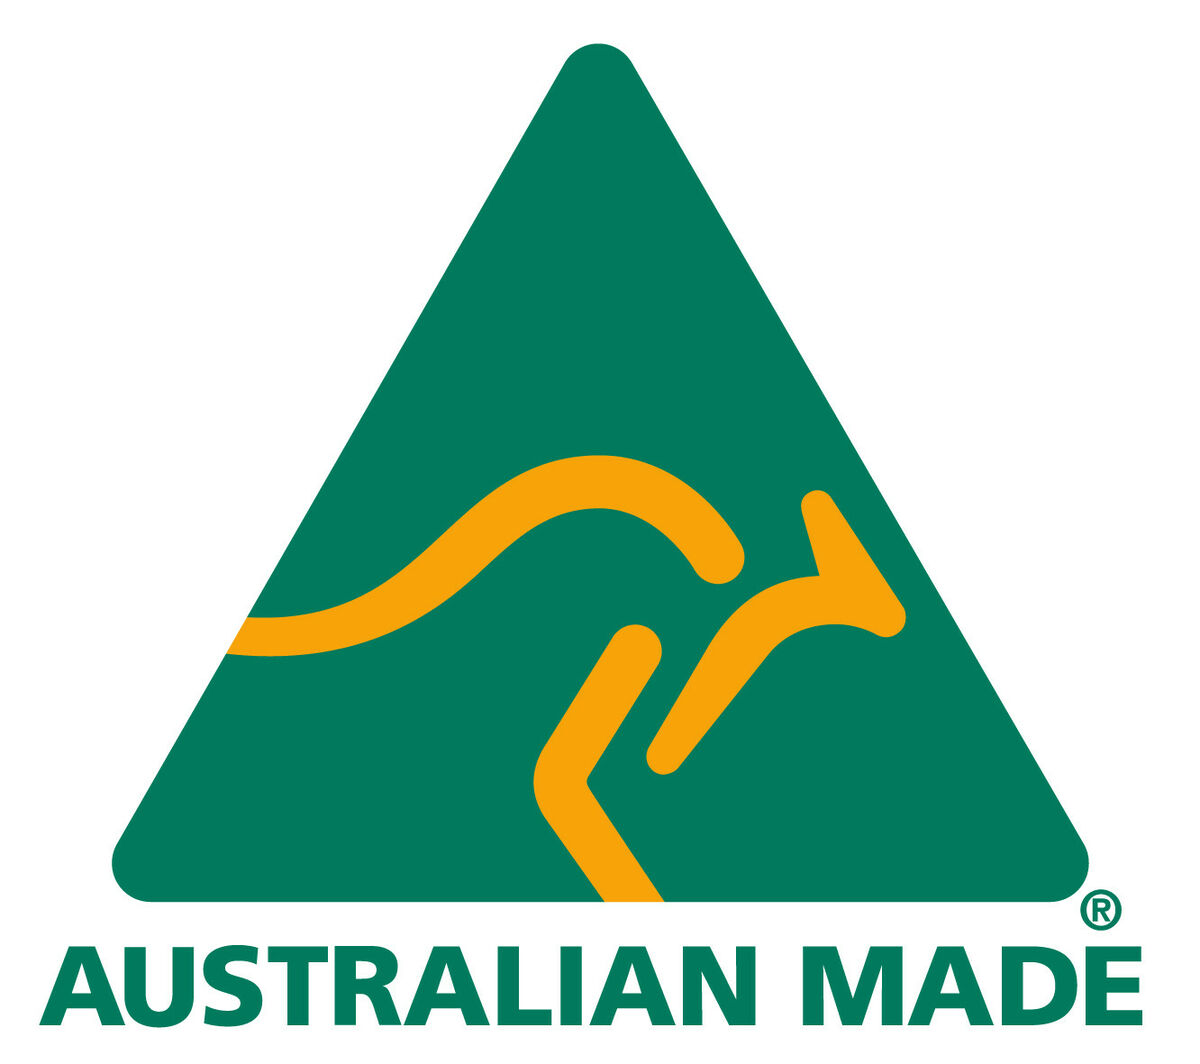 Only Made In Australia